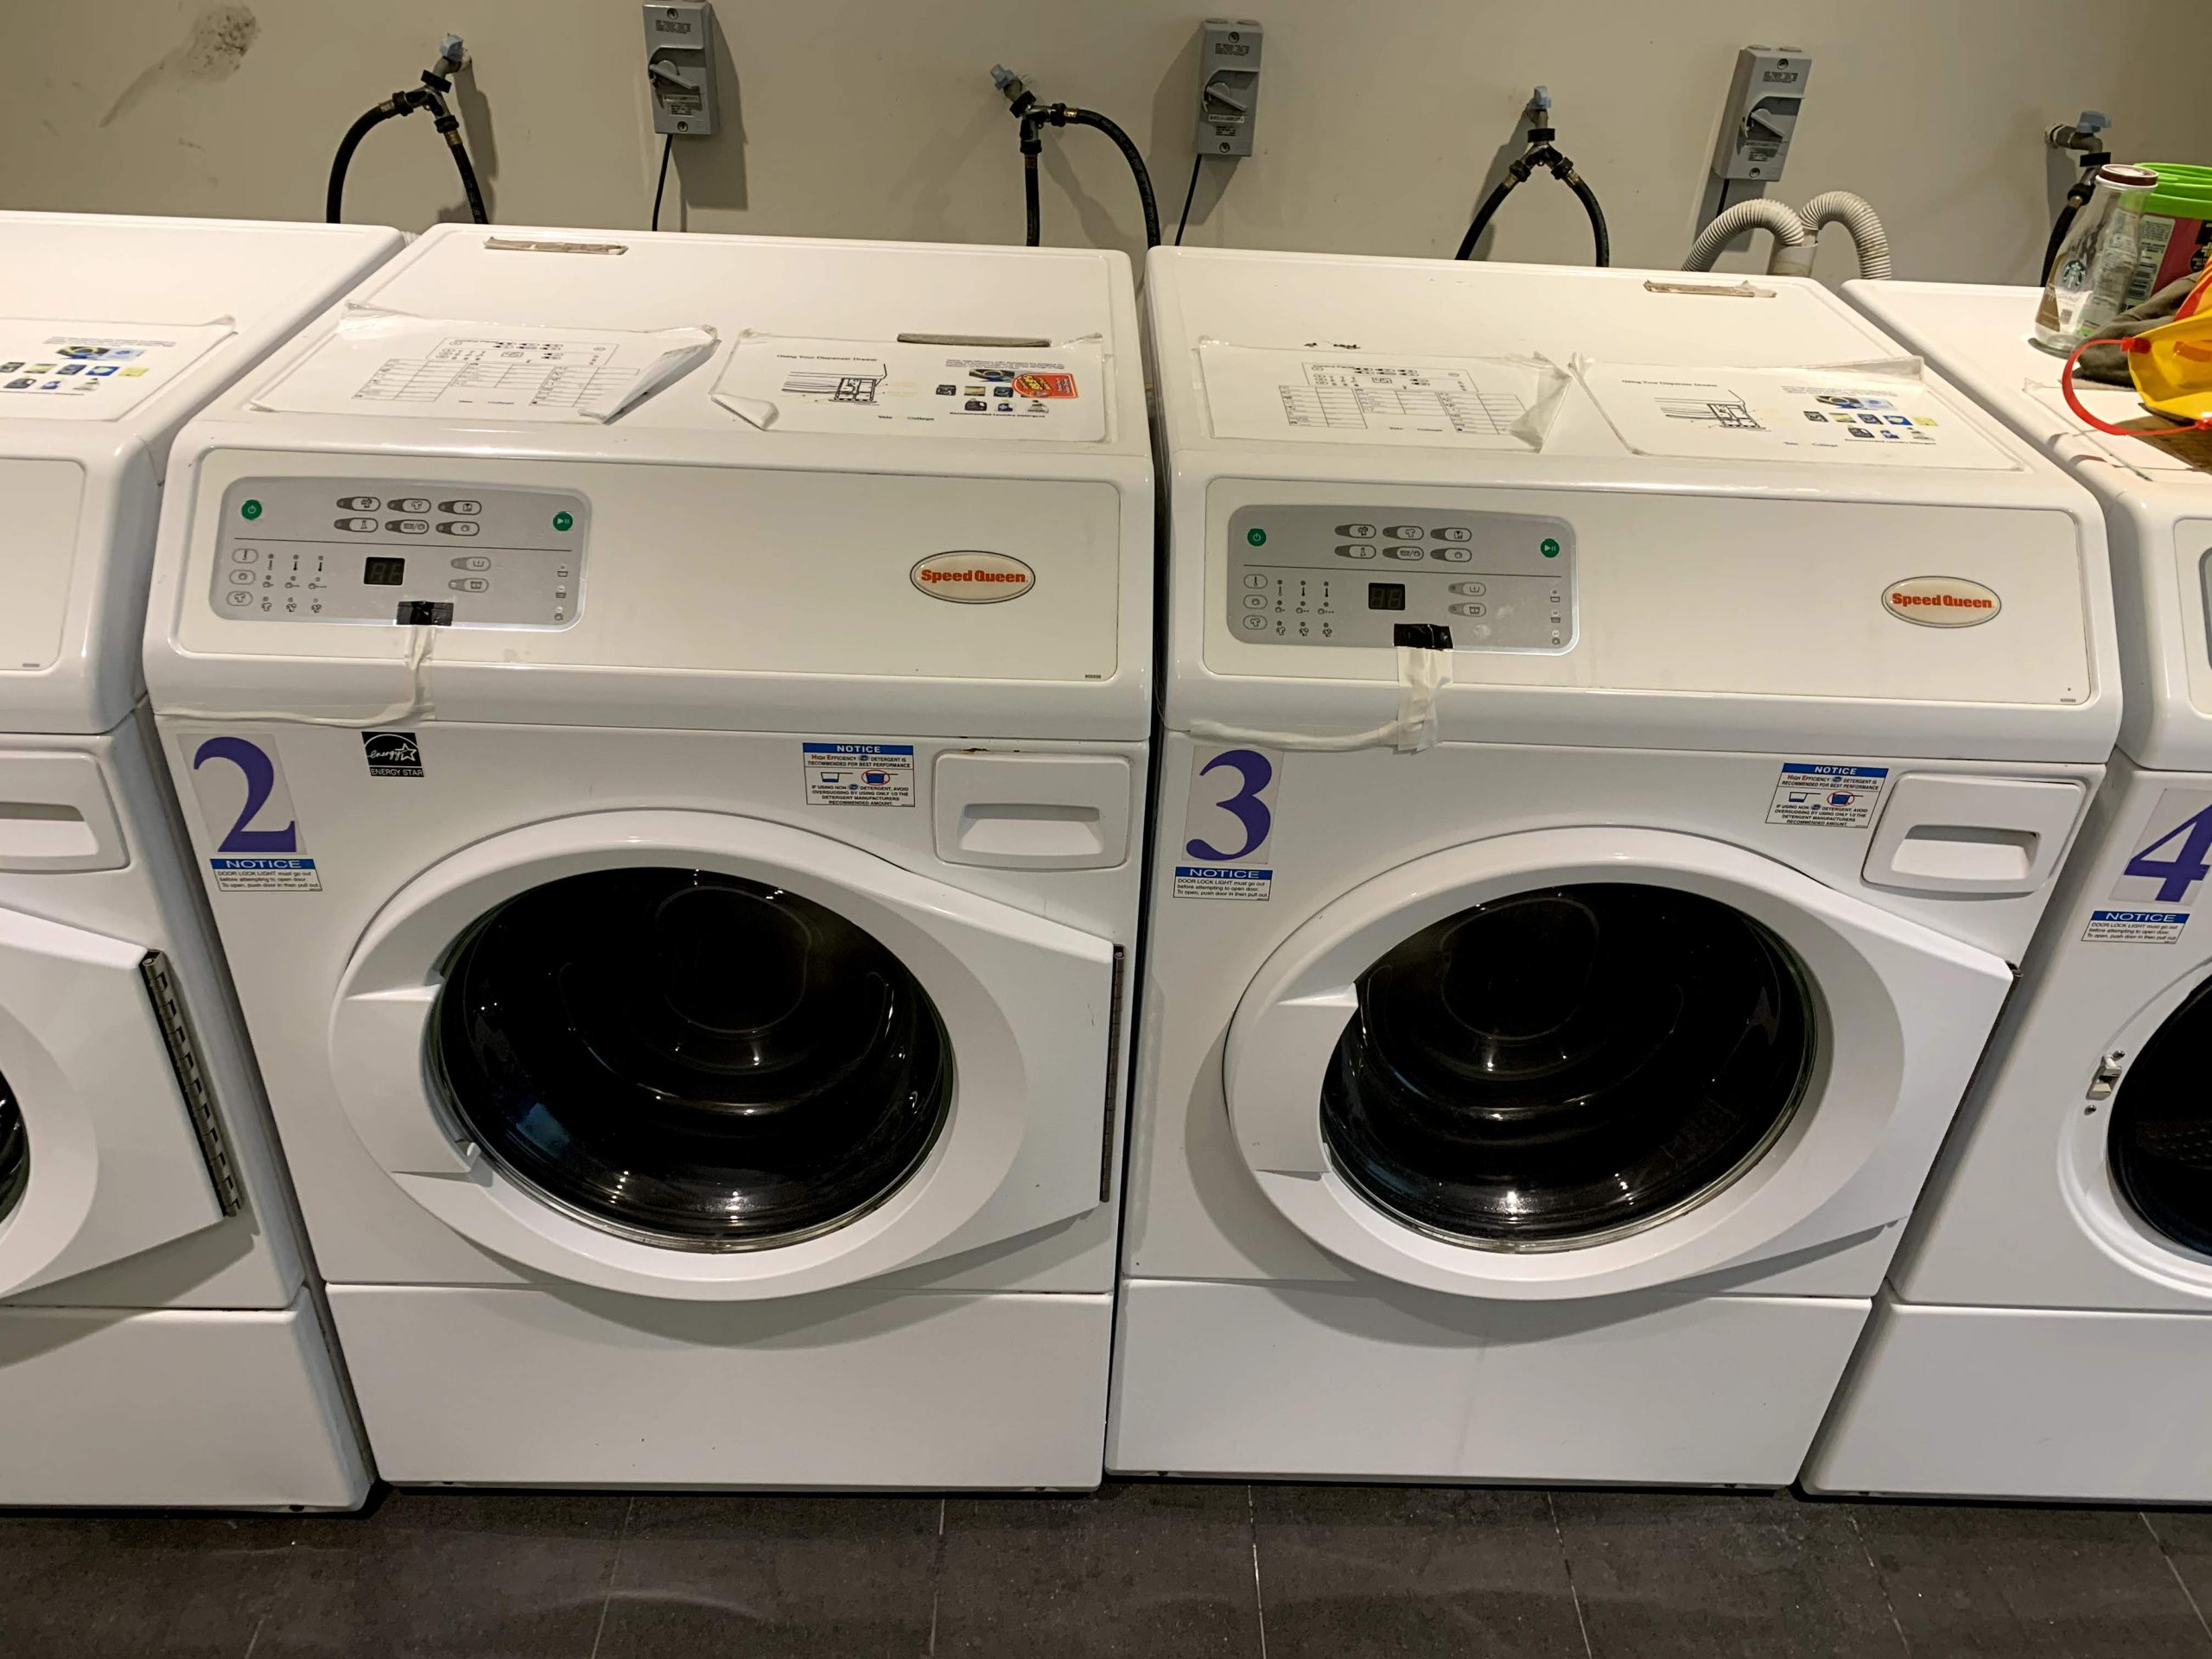 Building the Yale-NUS Smart Laundry System